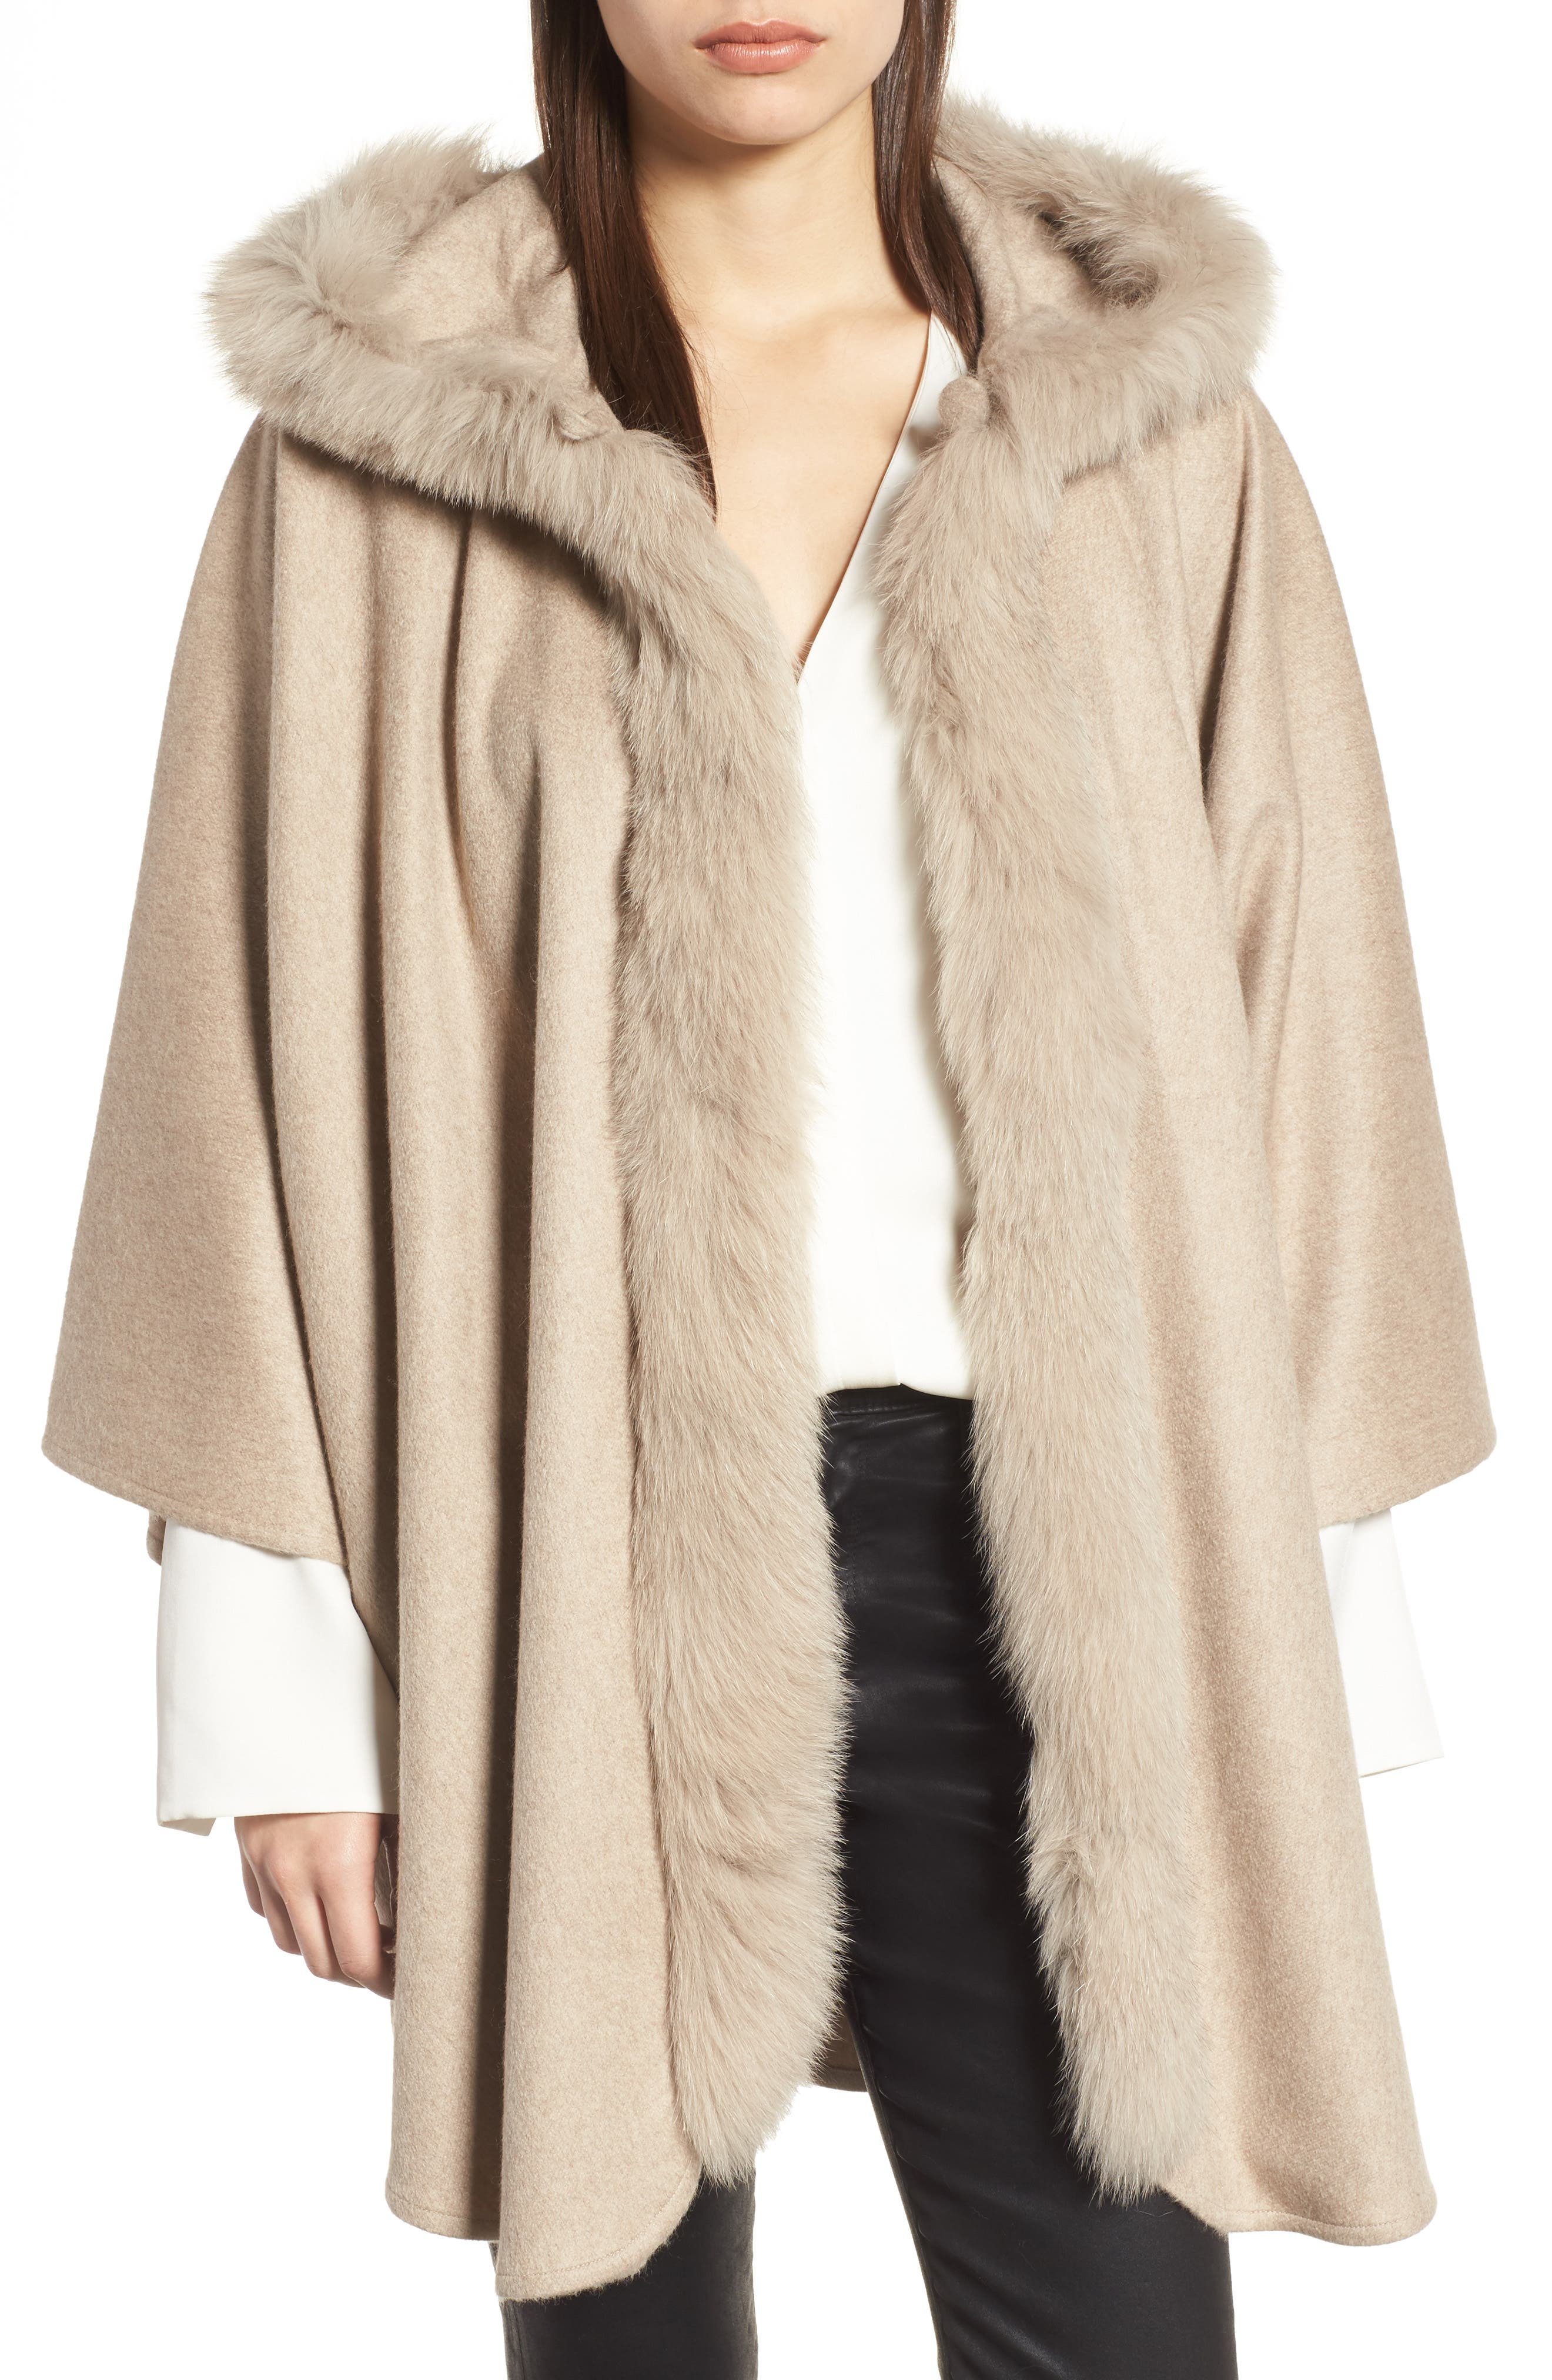 Cashmere Hooded Cape with Genuine Fox Fur Trim,                             Main thumbnail 1, color,                             Beige